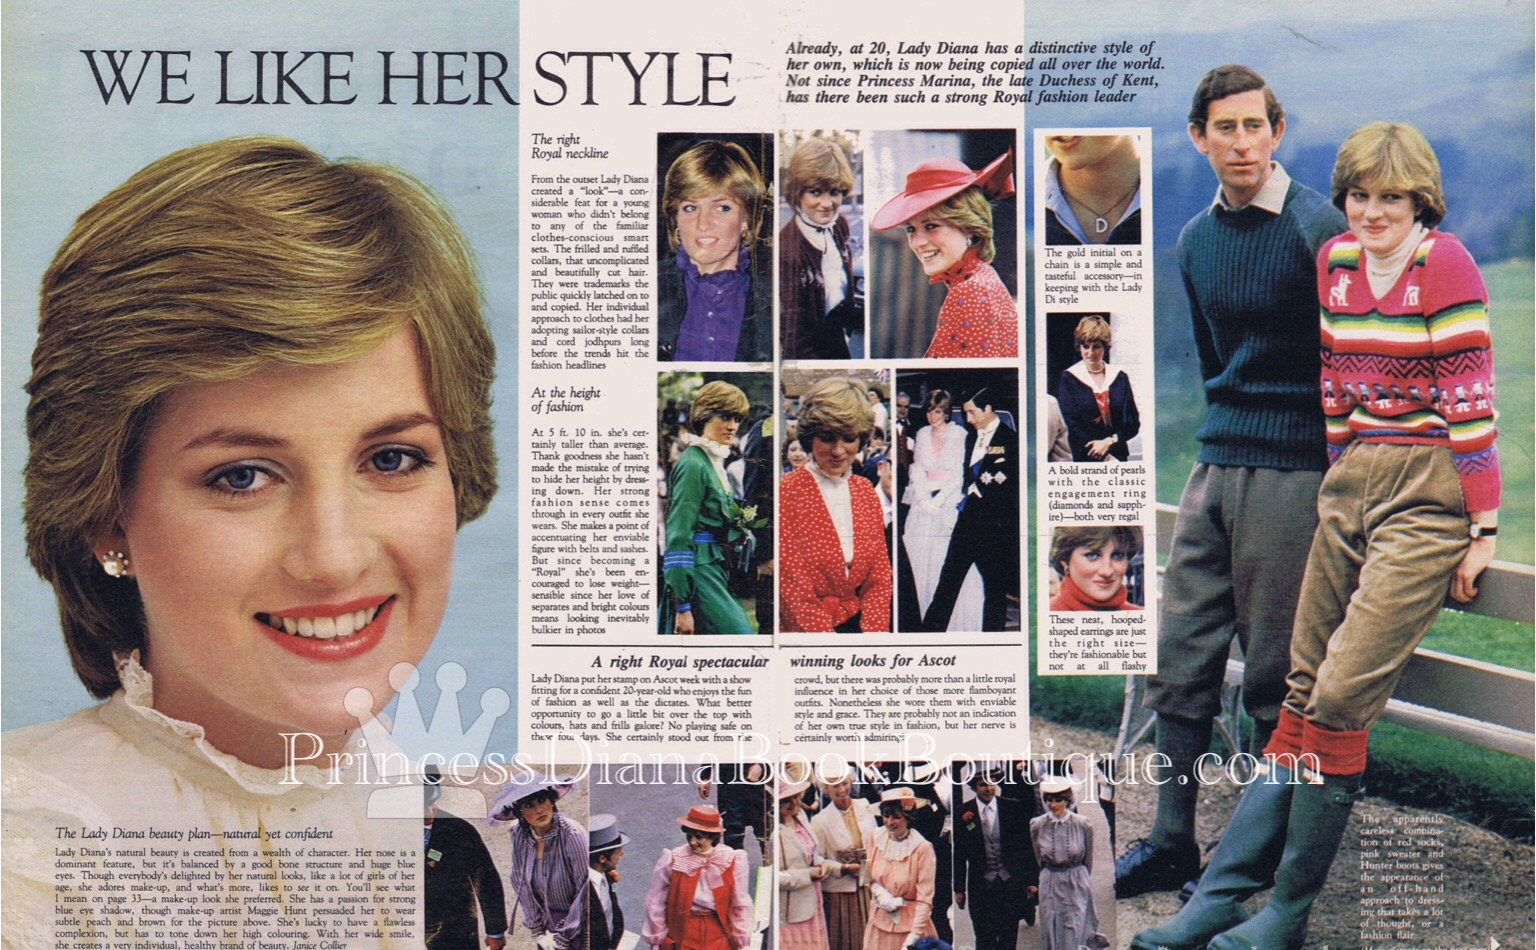 We Like Her Style Our Princess Diana Style Article For 3 March 2016 Princess Diana News Blog All Things Princess Diana